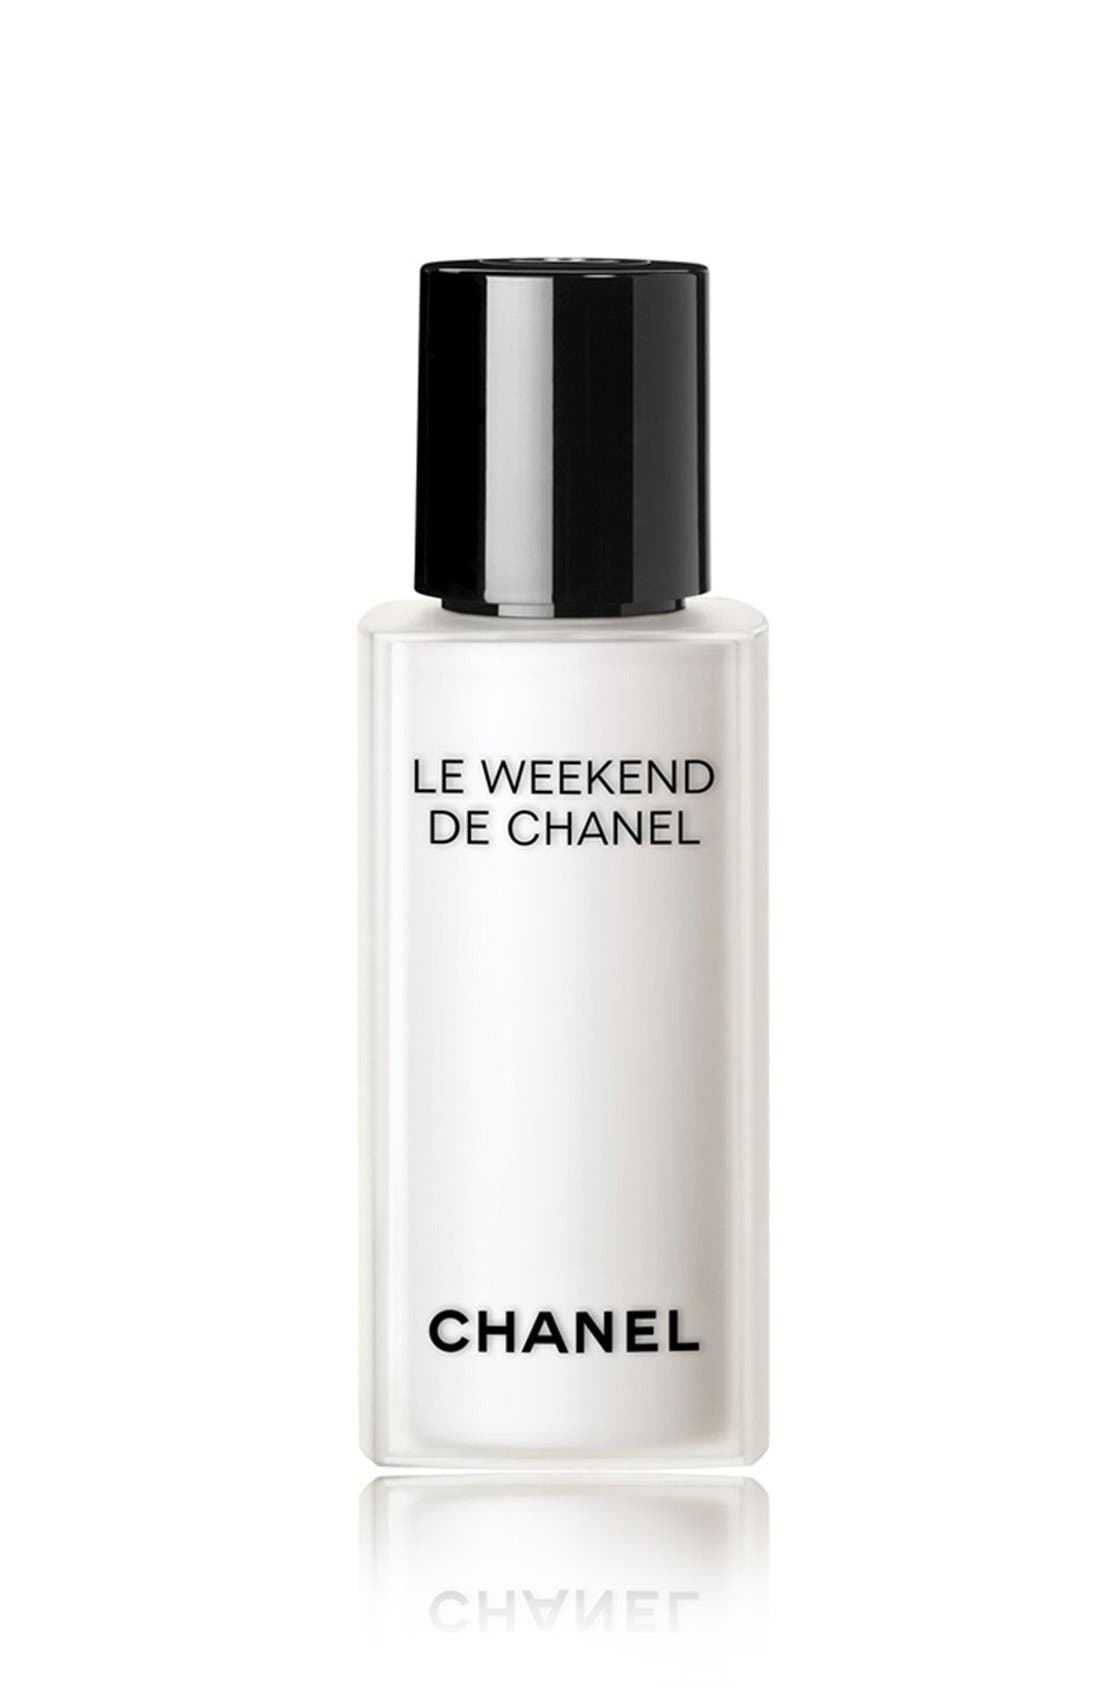 CHANEL LE WEEKEND DE CHANEL Weekly Renewing Face Care